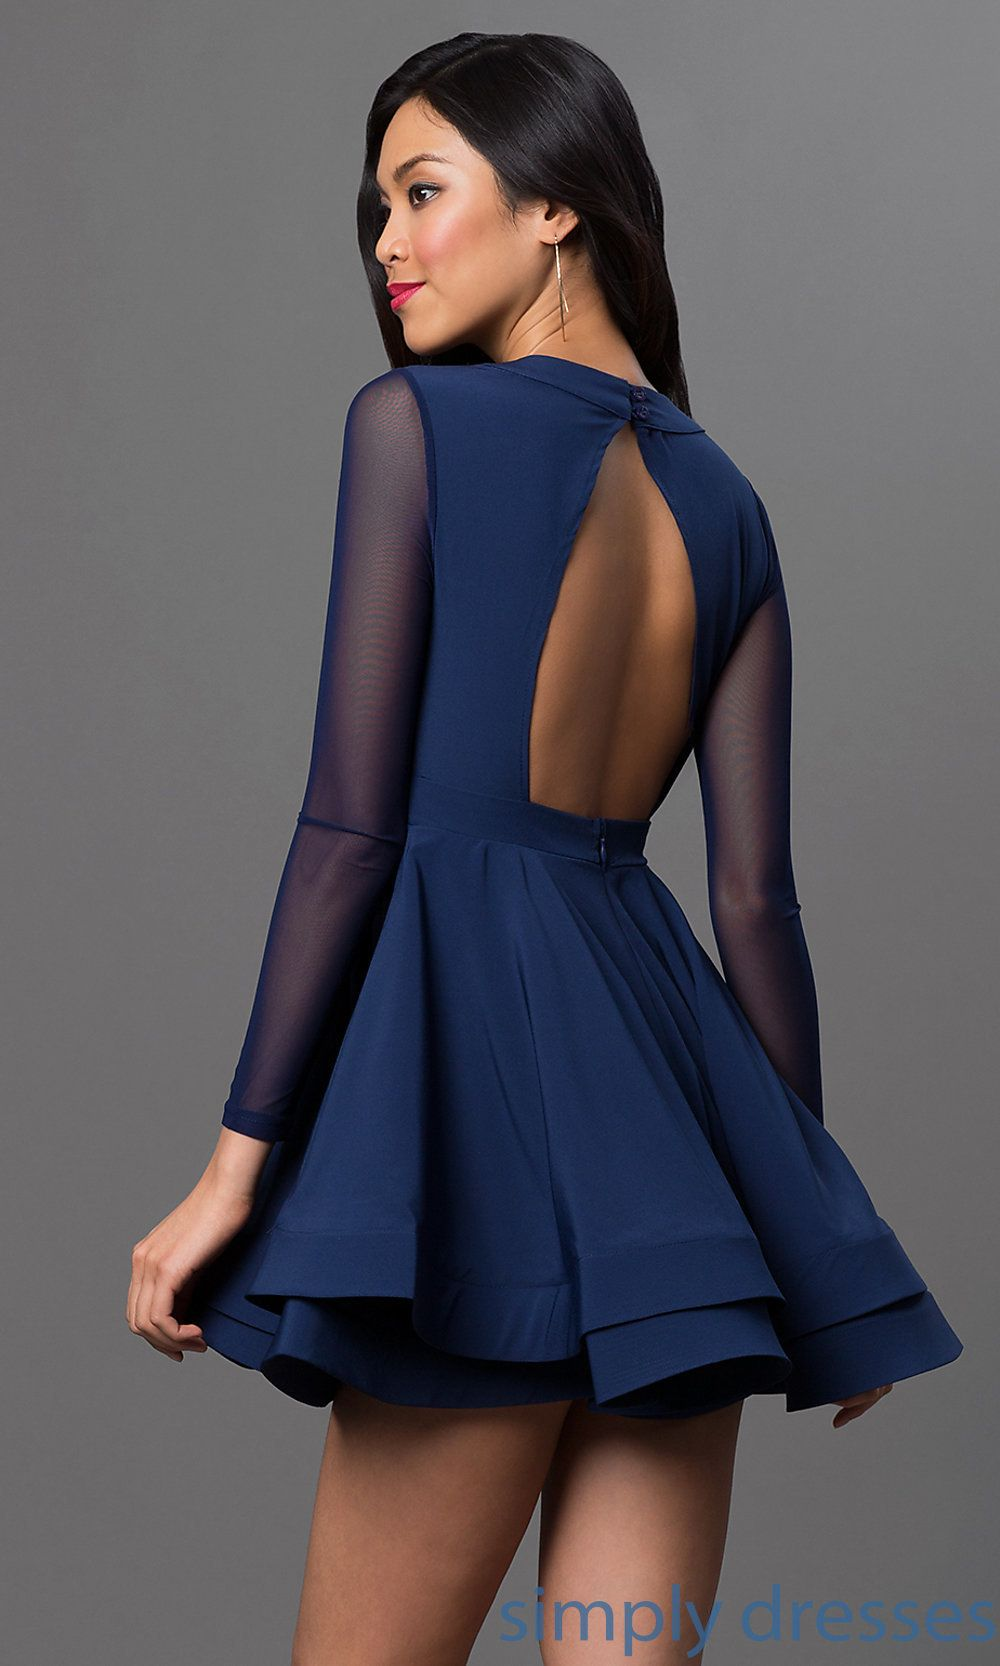 Homecoming Dresses, Short Semi-Formal Party Dresses – SimplyDresses